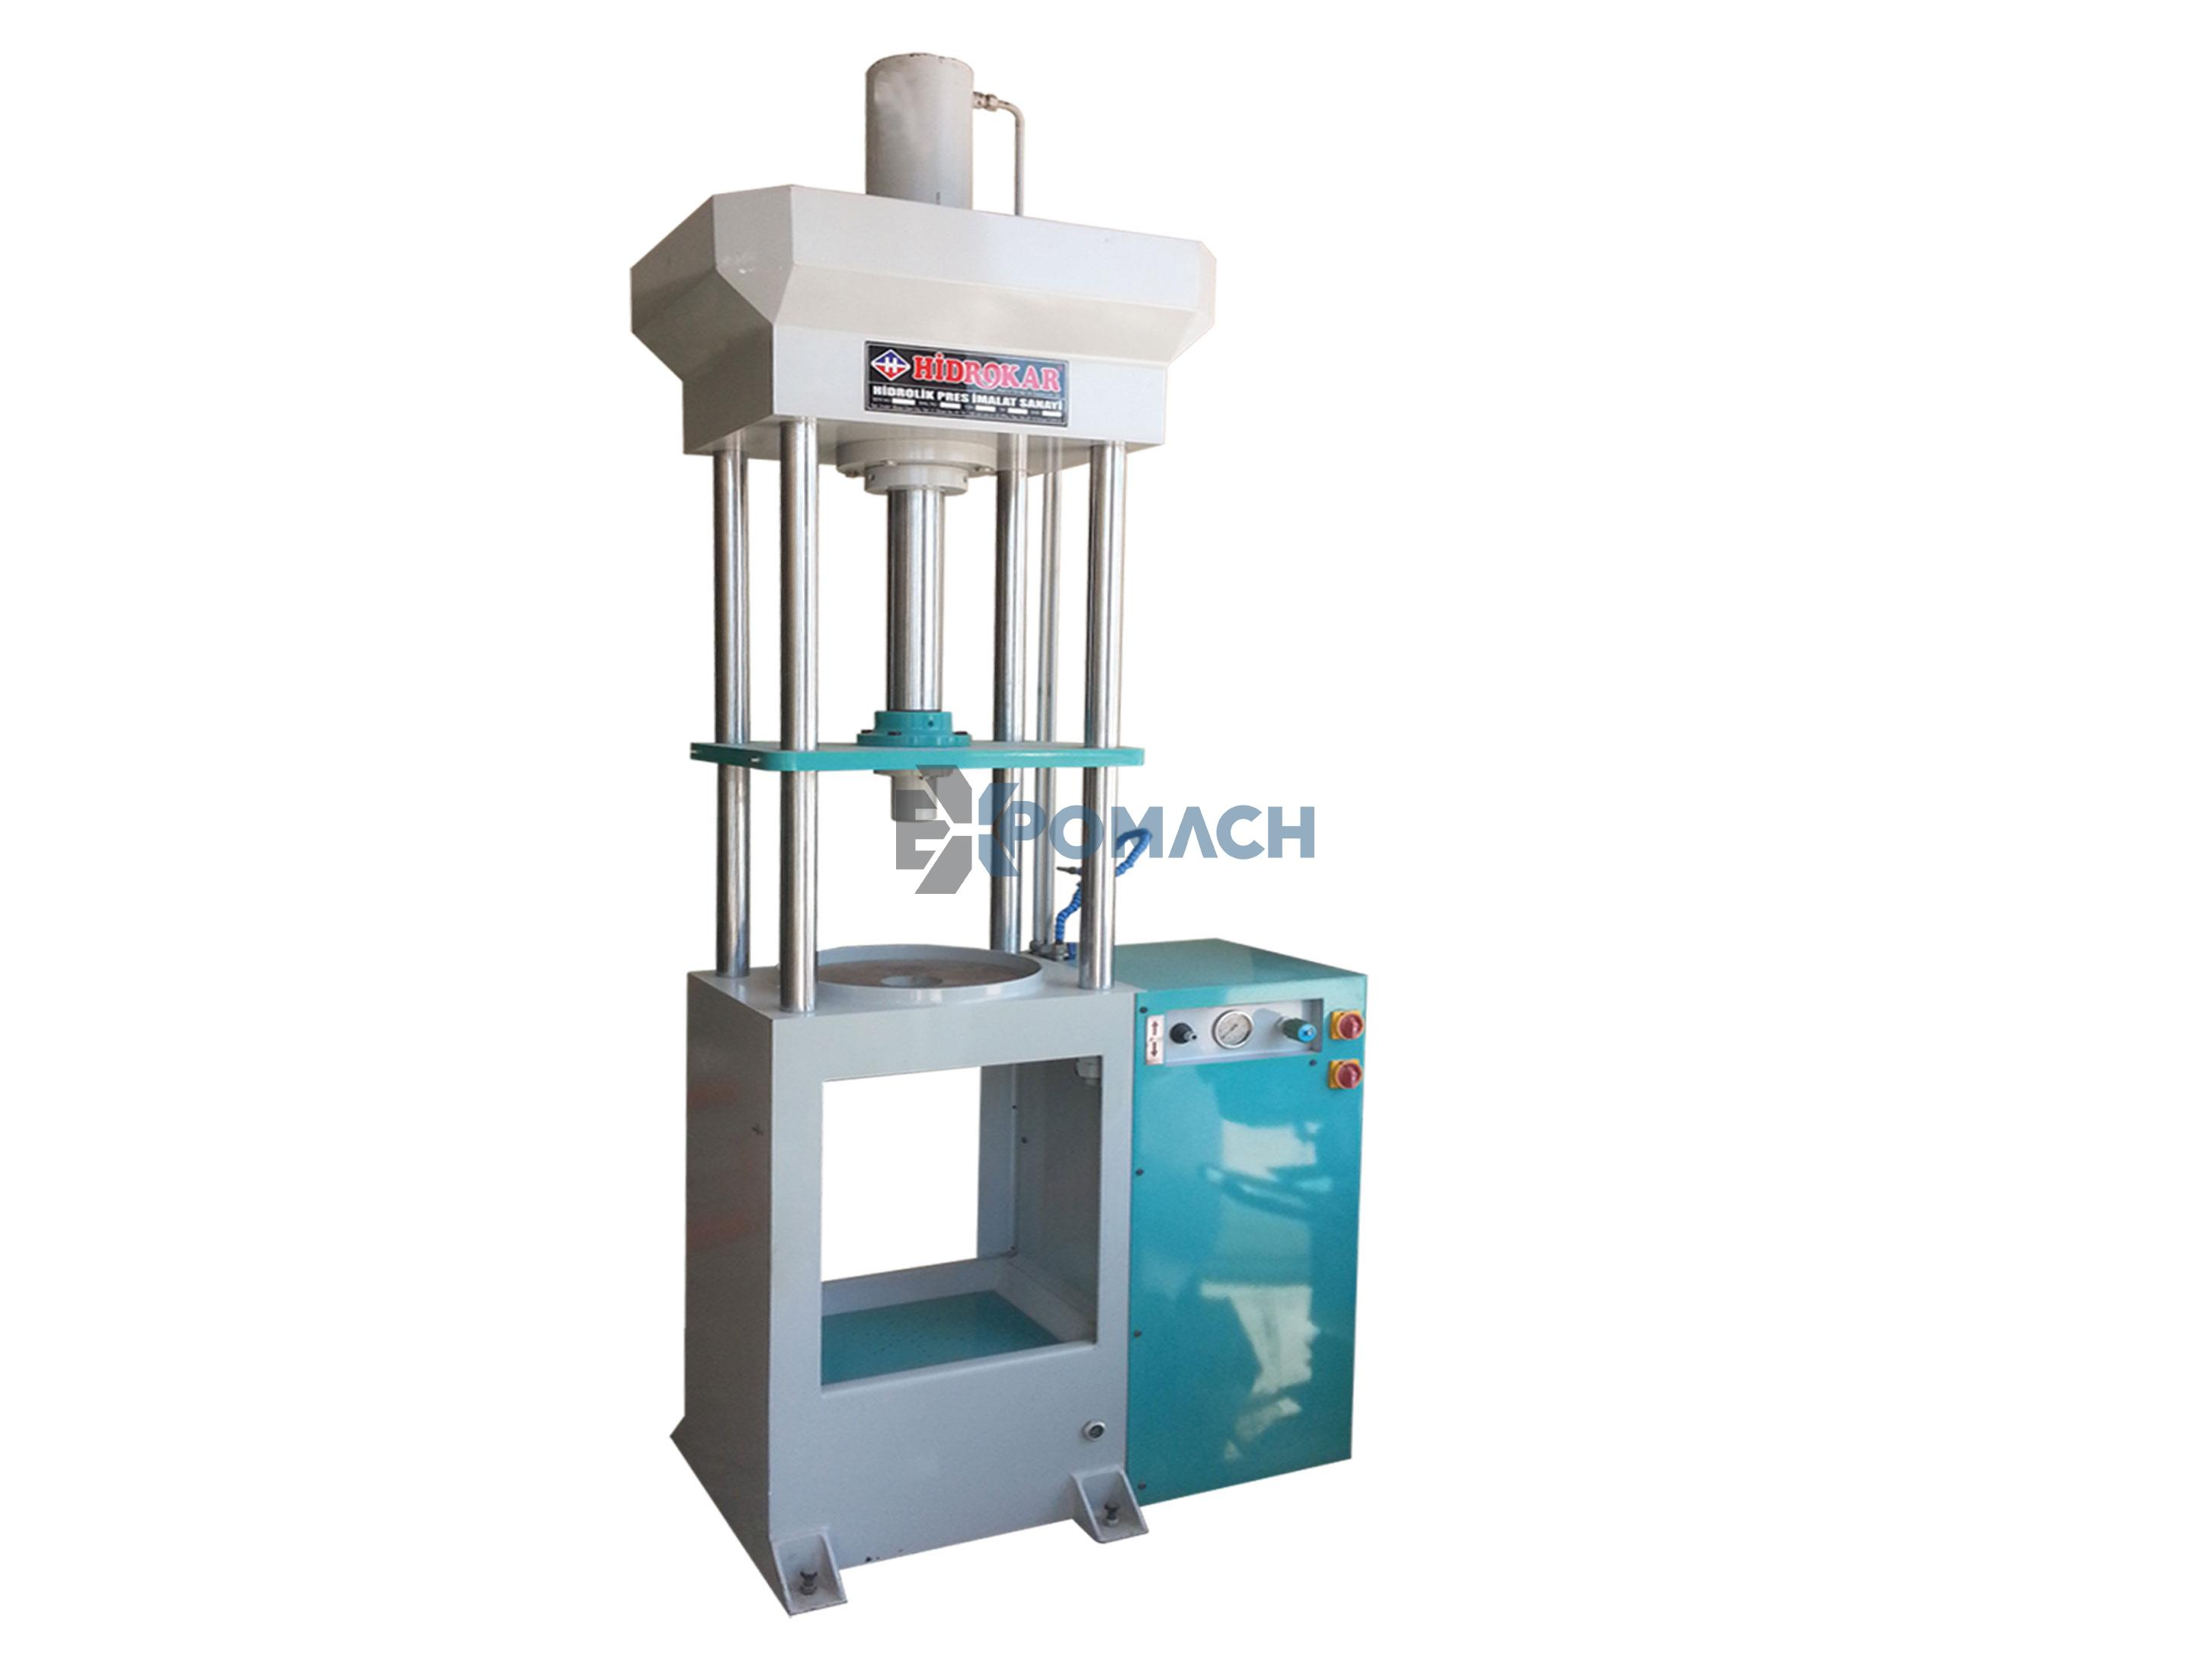 Broş Basma Presi - Vertical Push Broaching Press